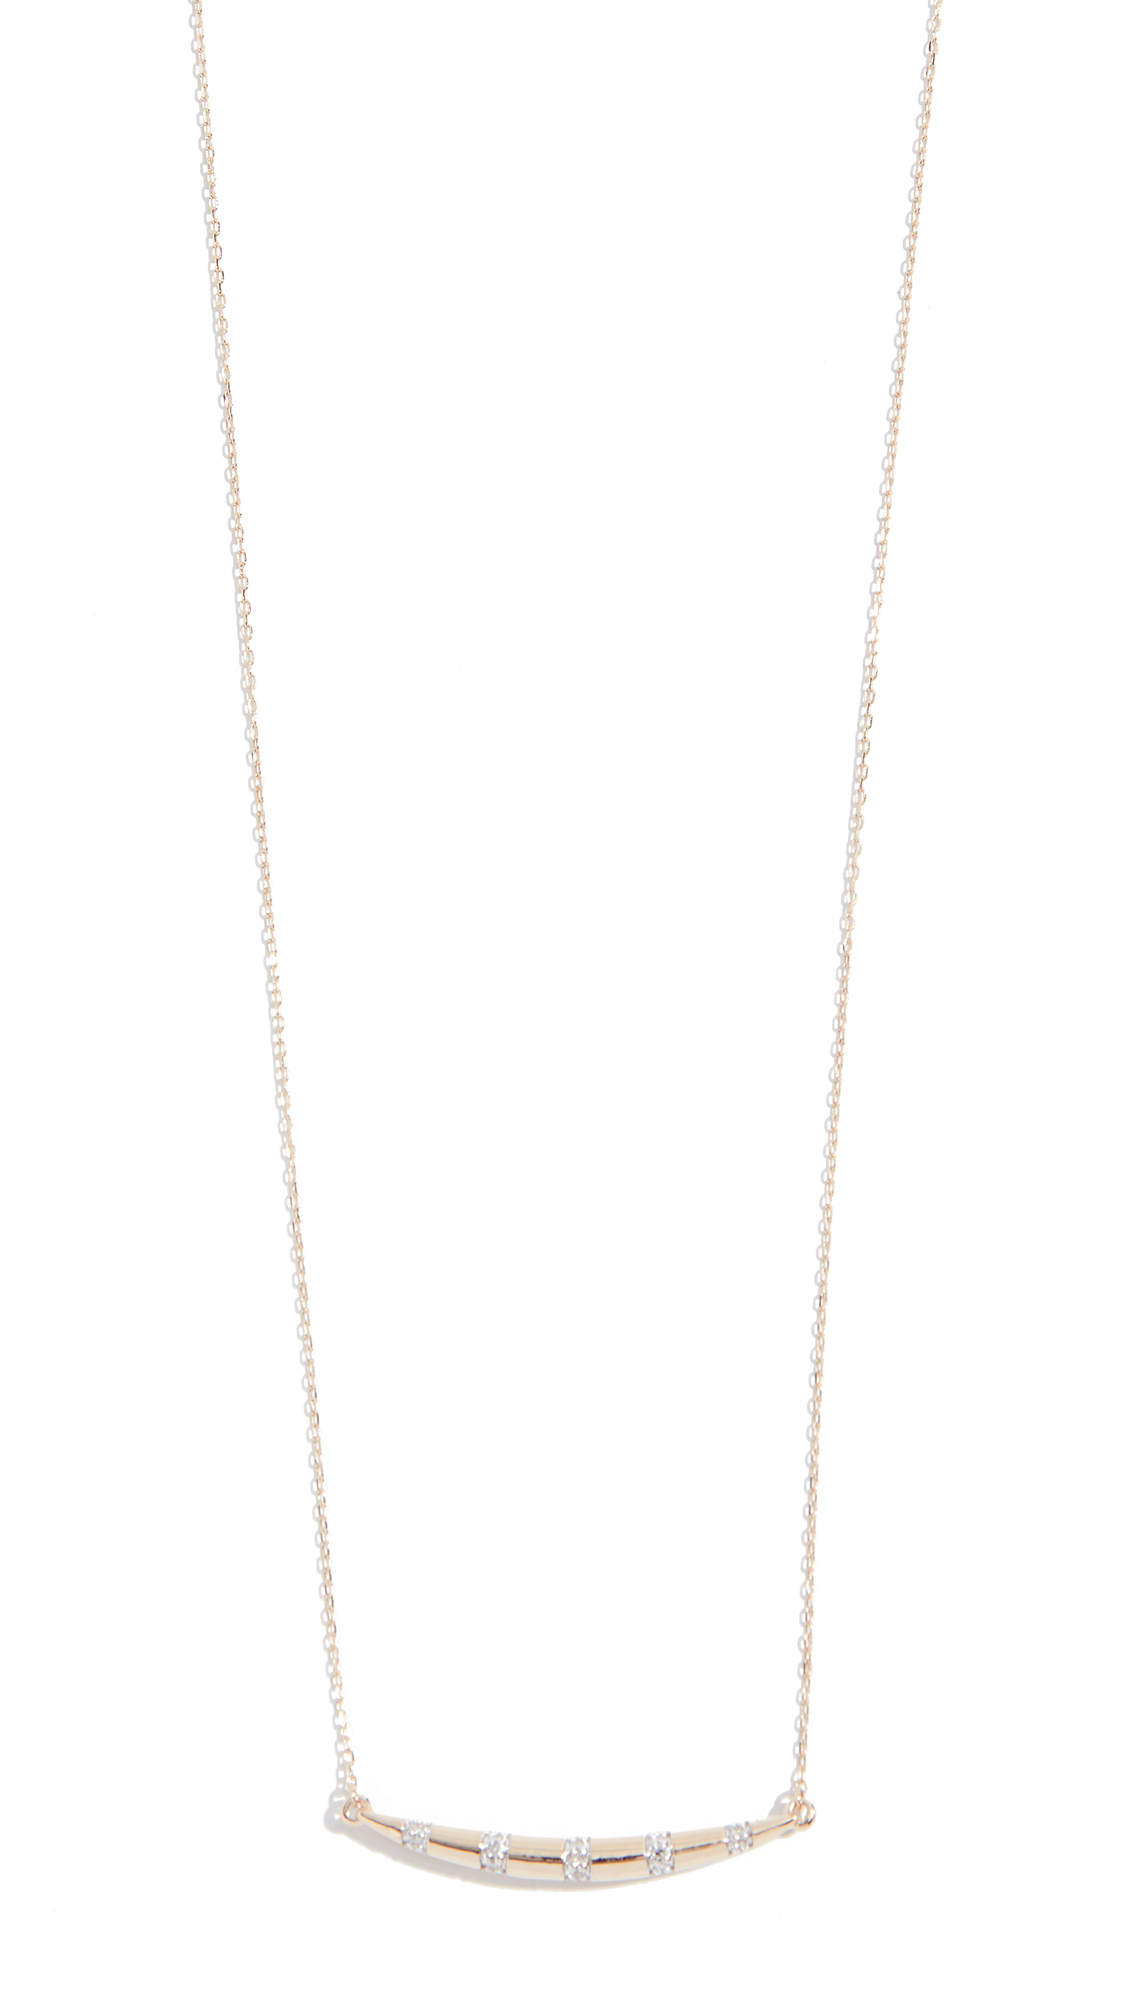 ADINA REYTER 14K LARGE DIAMOND CURVE NECKLACE